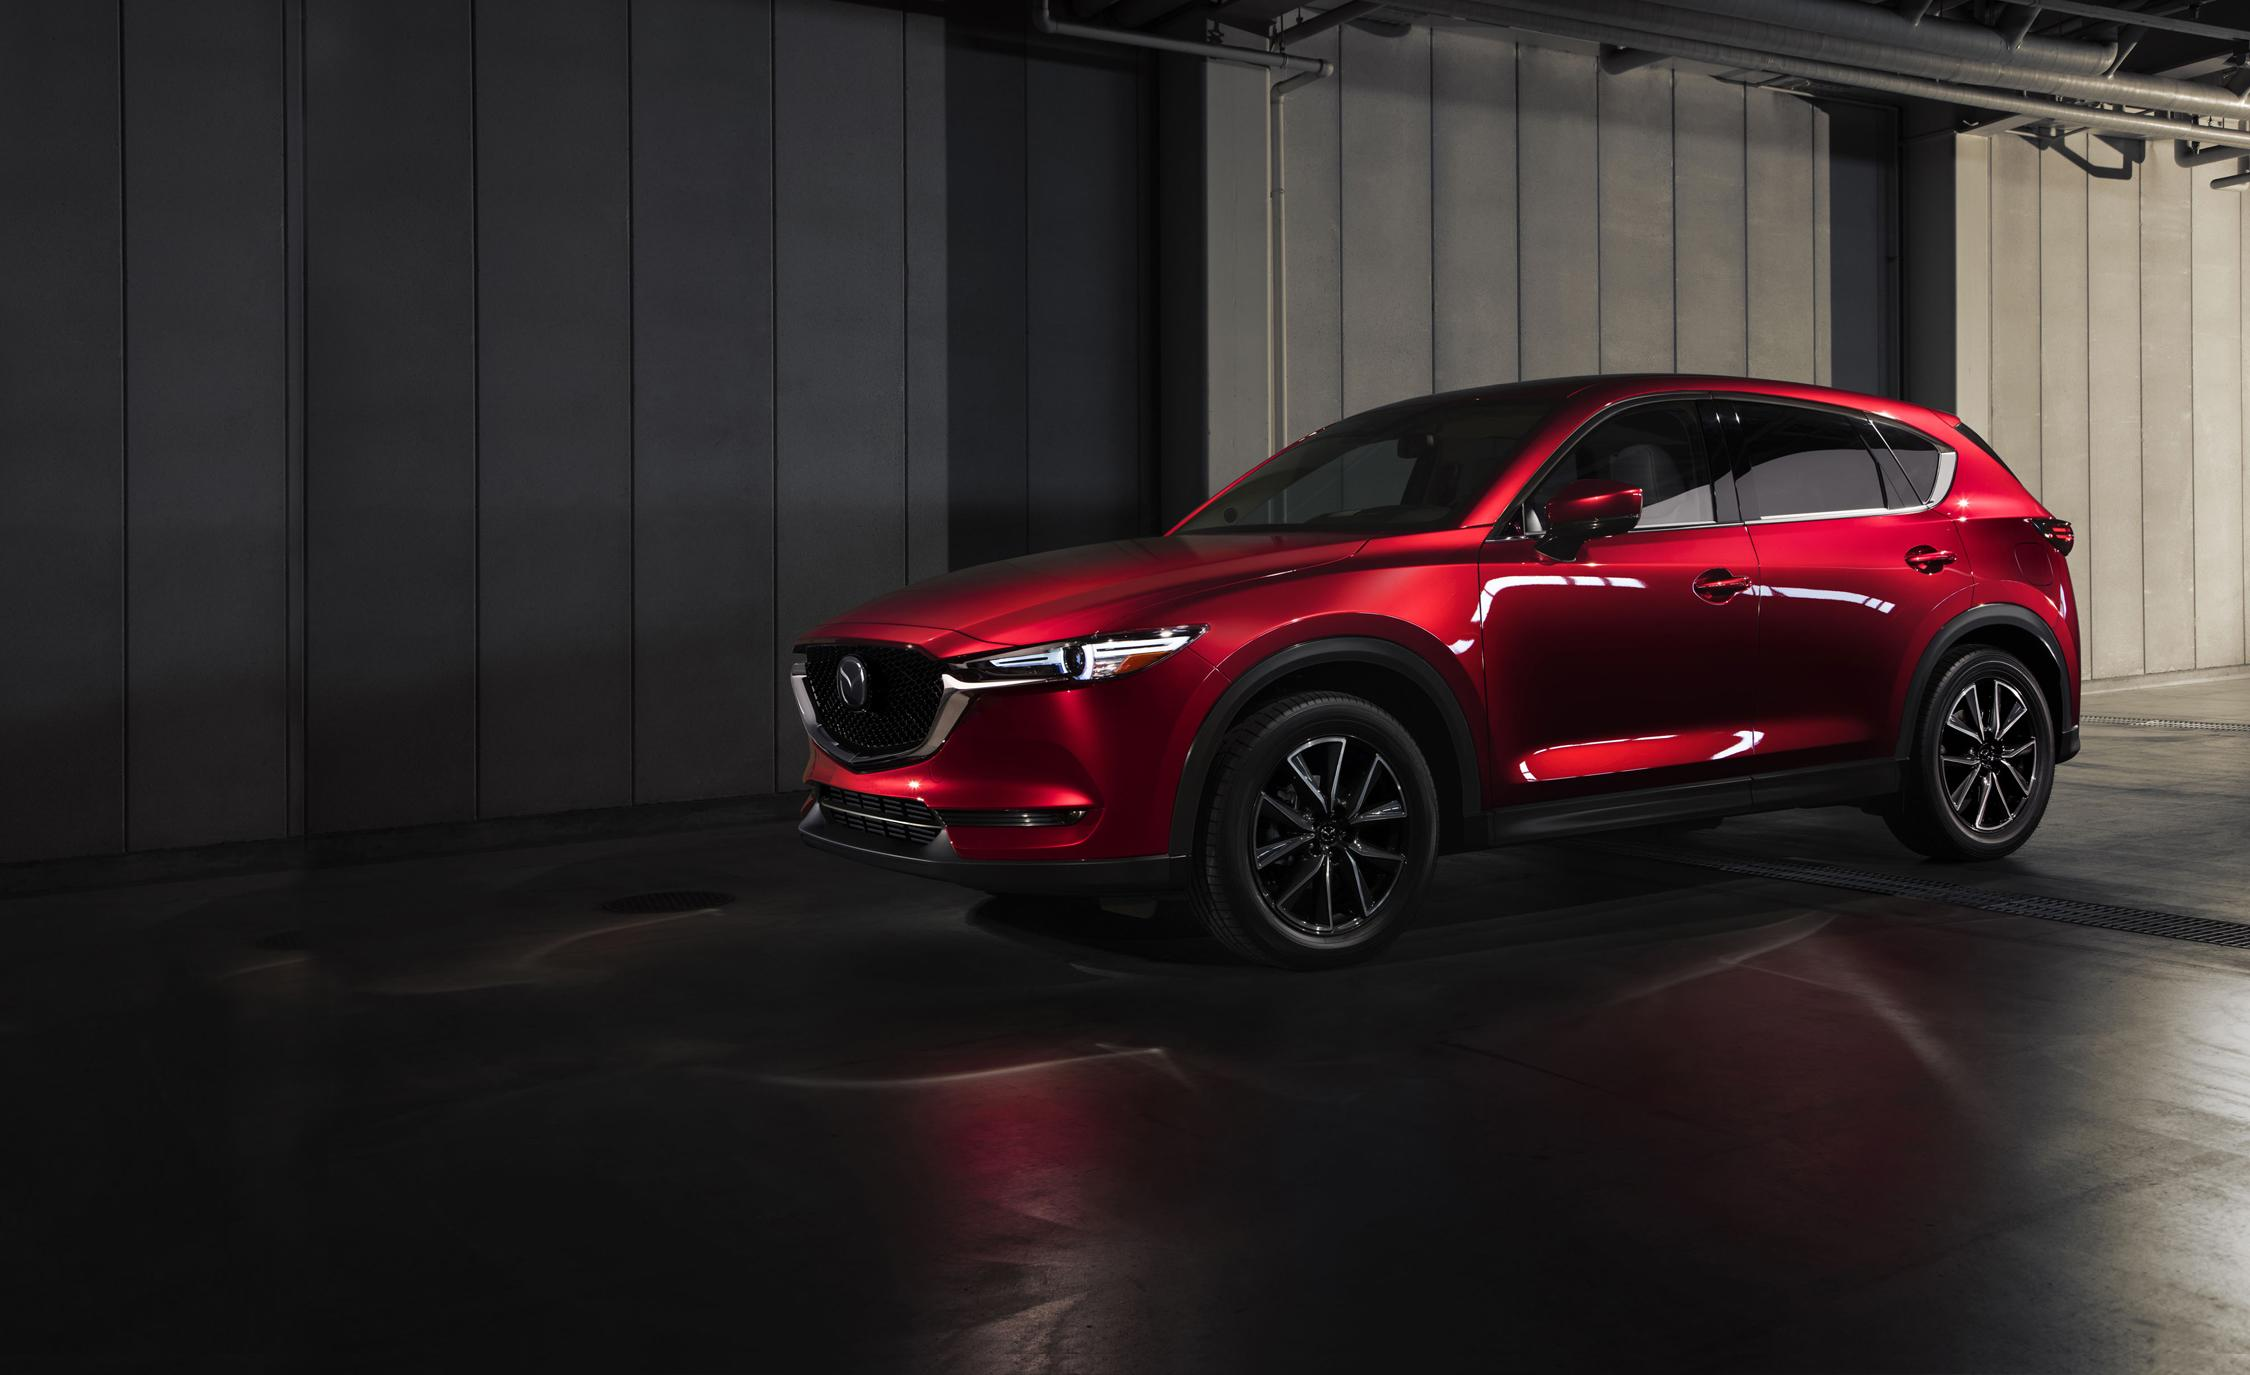 cx gt en awd review first mazda canada trend touring test grand news motor side